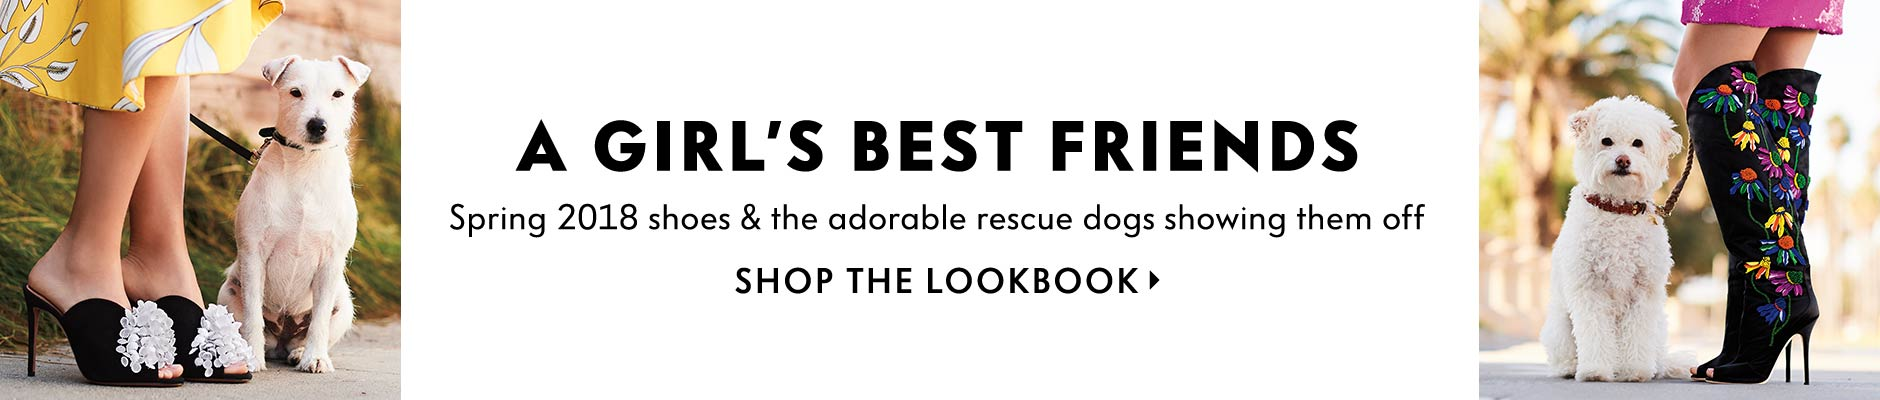 A Girl's Best Friends - Spring 2018 shoes & the adorable rescue dogs showing them off